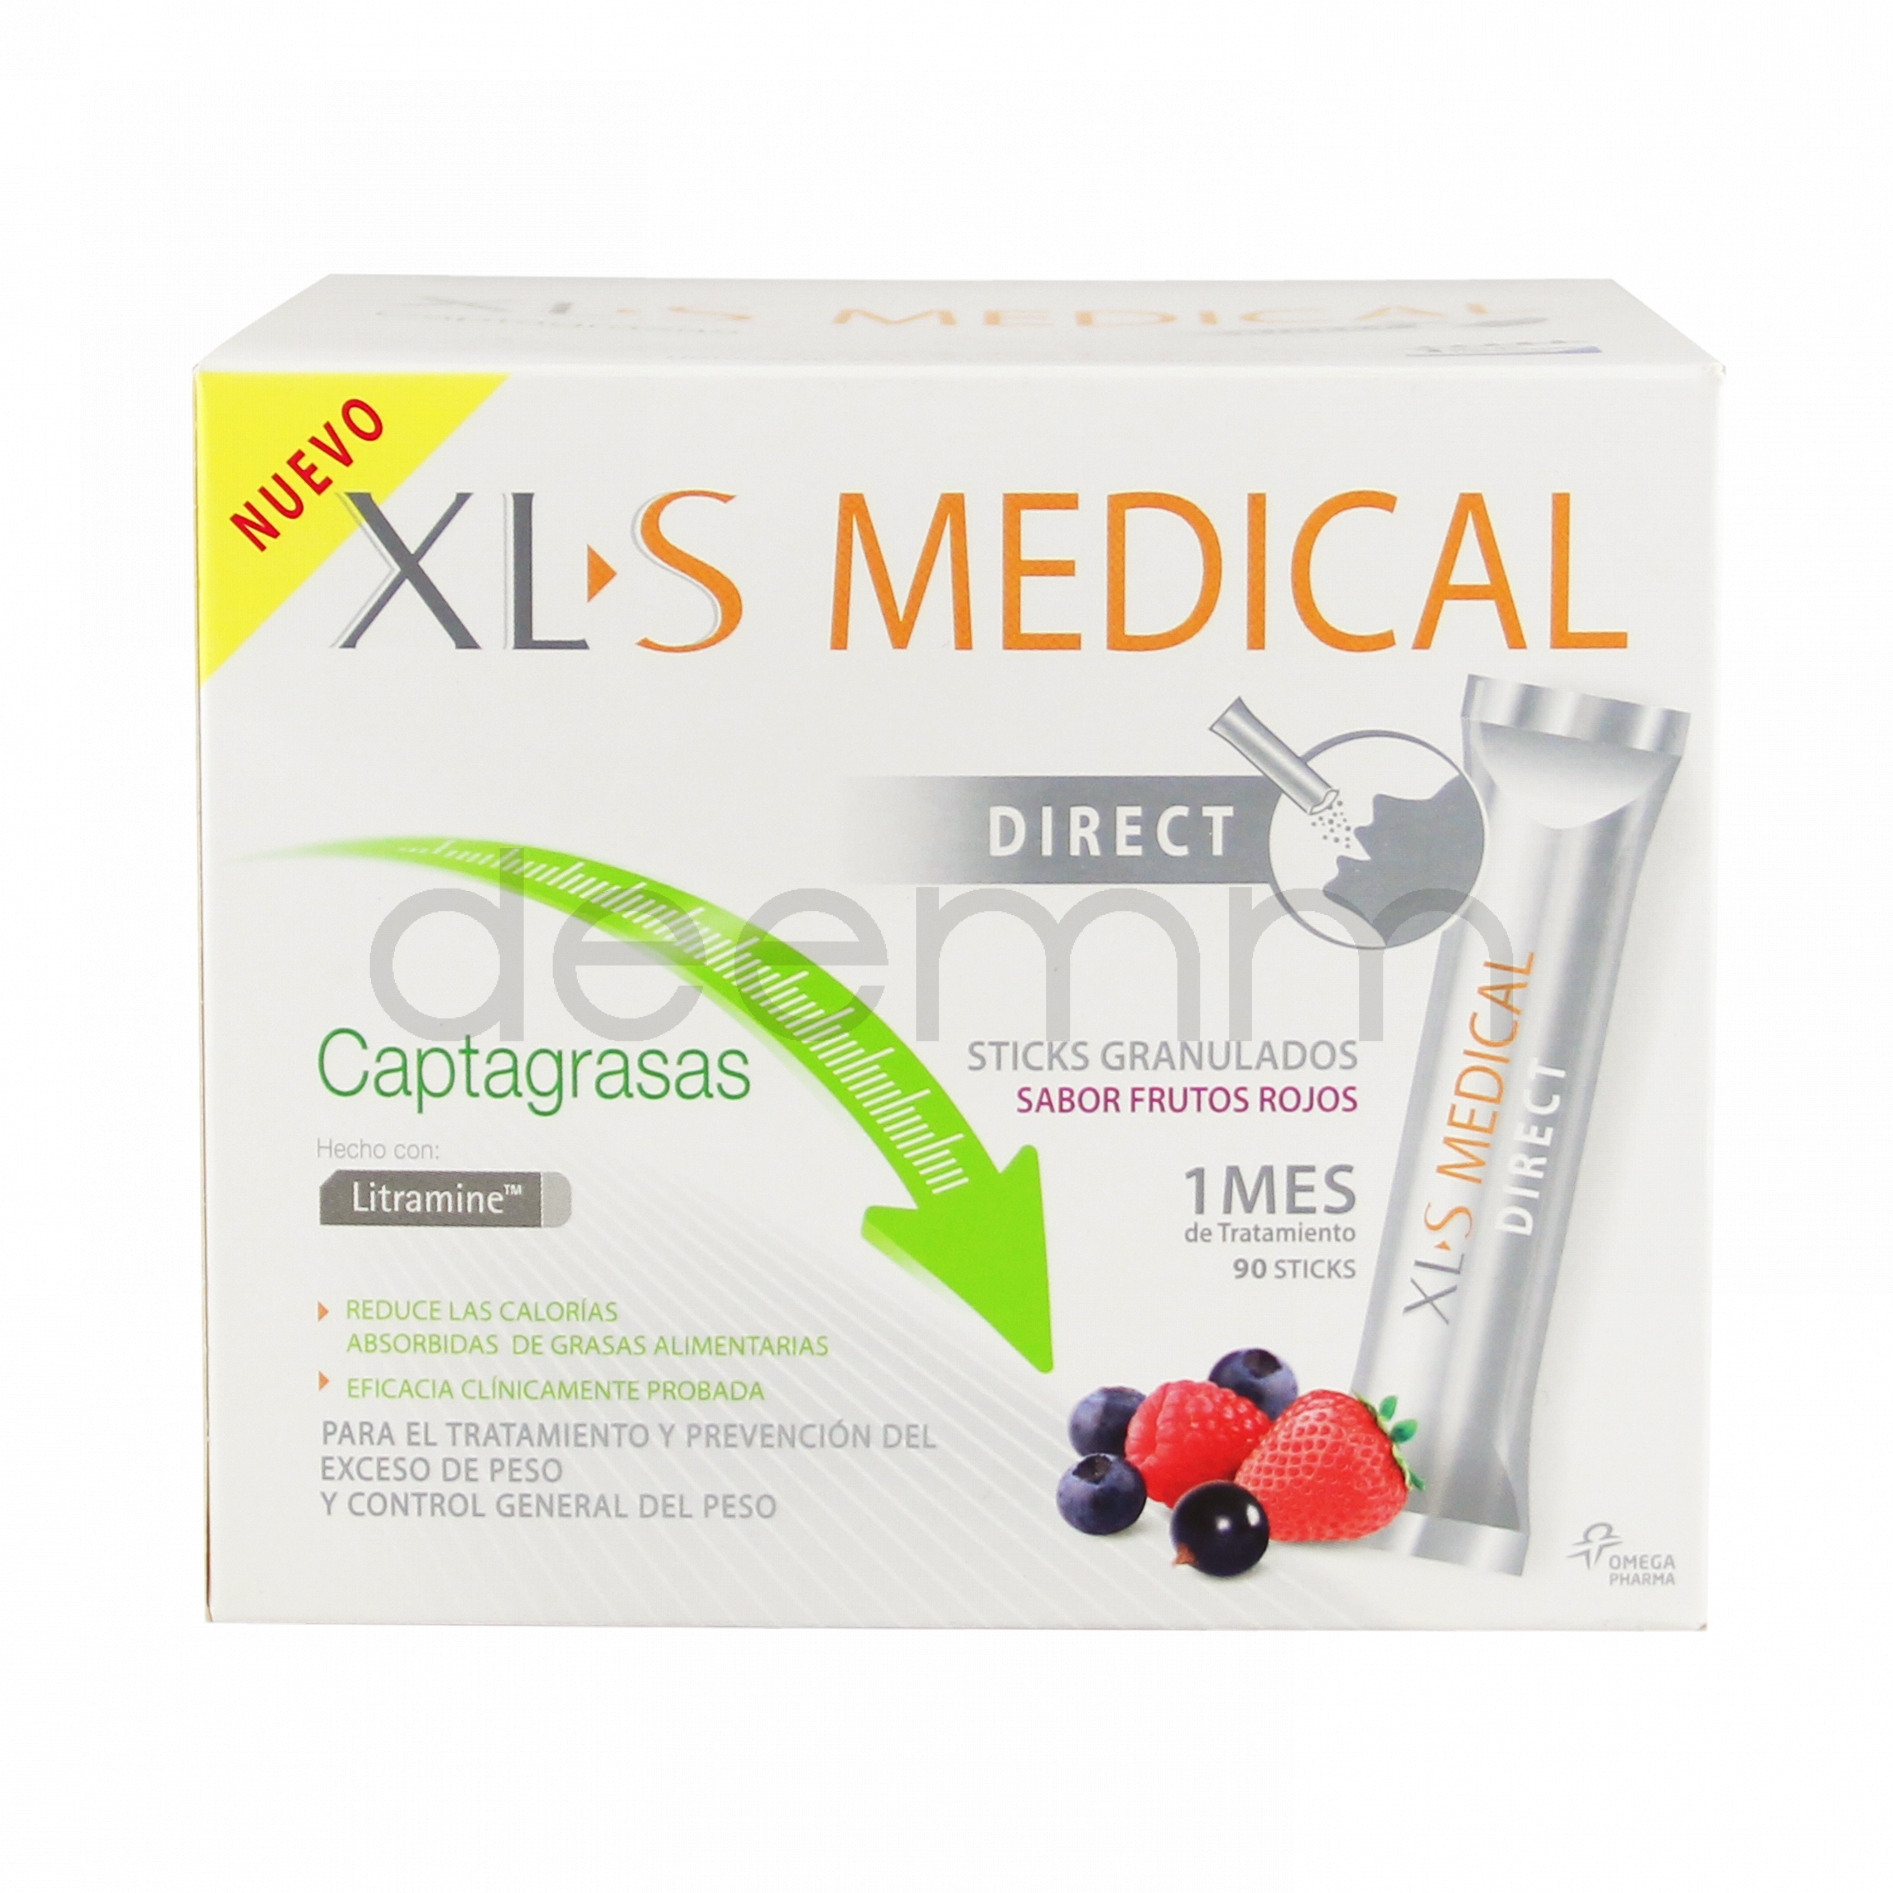 xls medical. 90 sticks